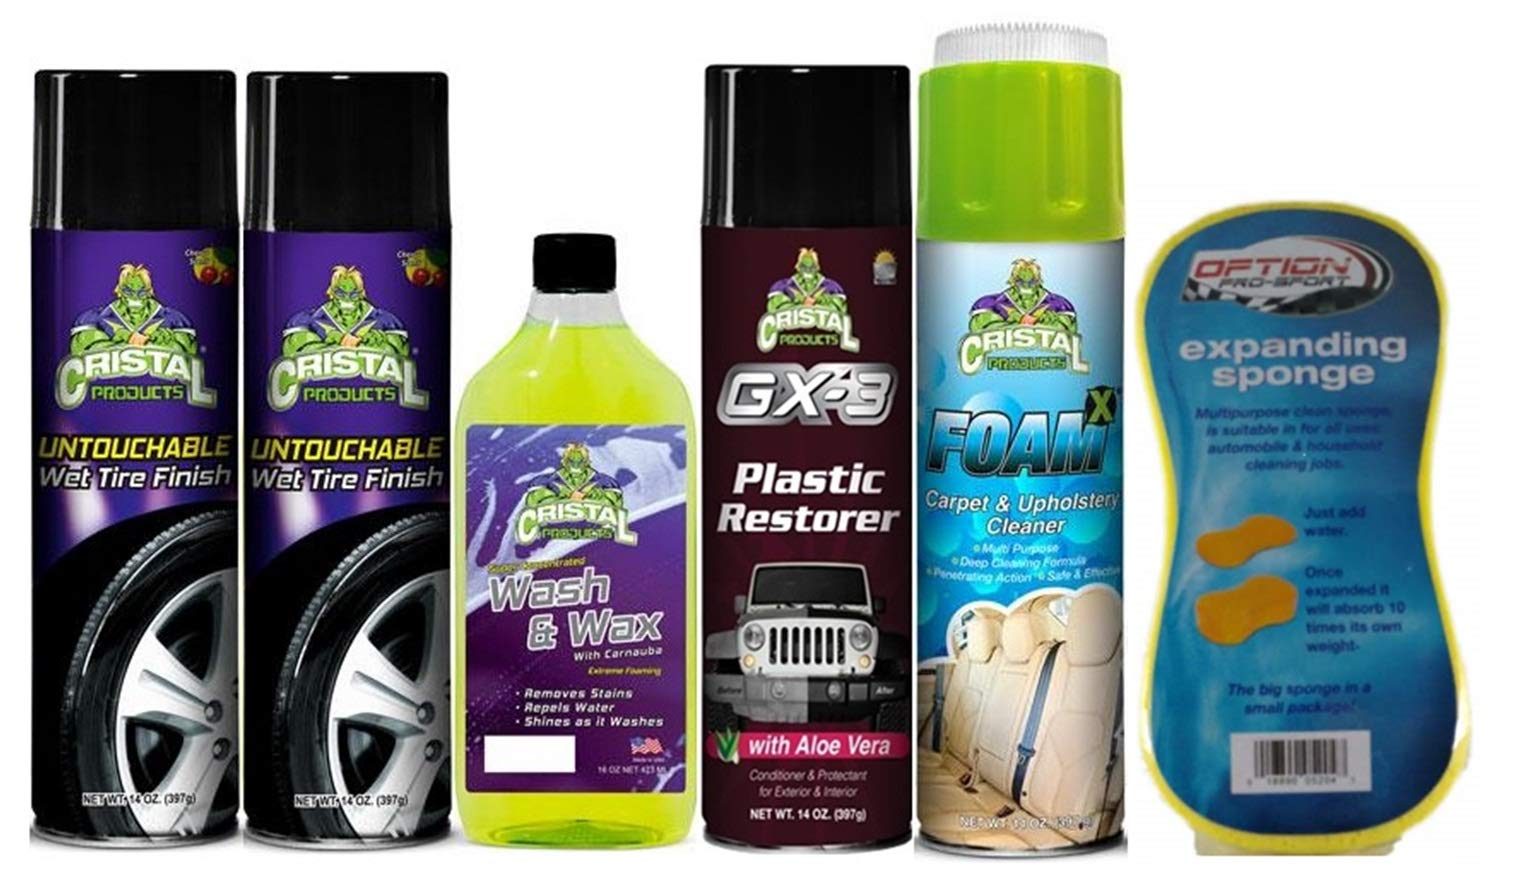 Cristal Products Untouchable Wet Tire Finish Bundle with GX-3 Plastic Restorer, Wash & Wax, and More (6 Items)